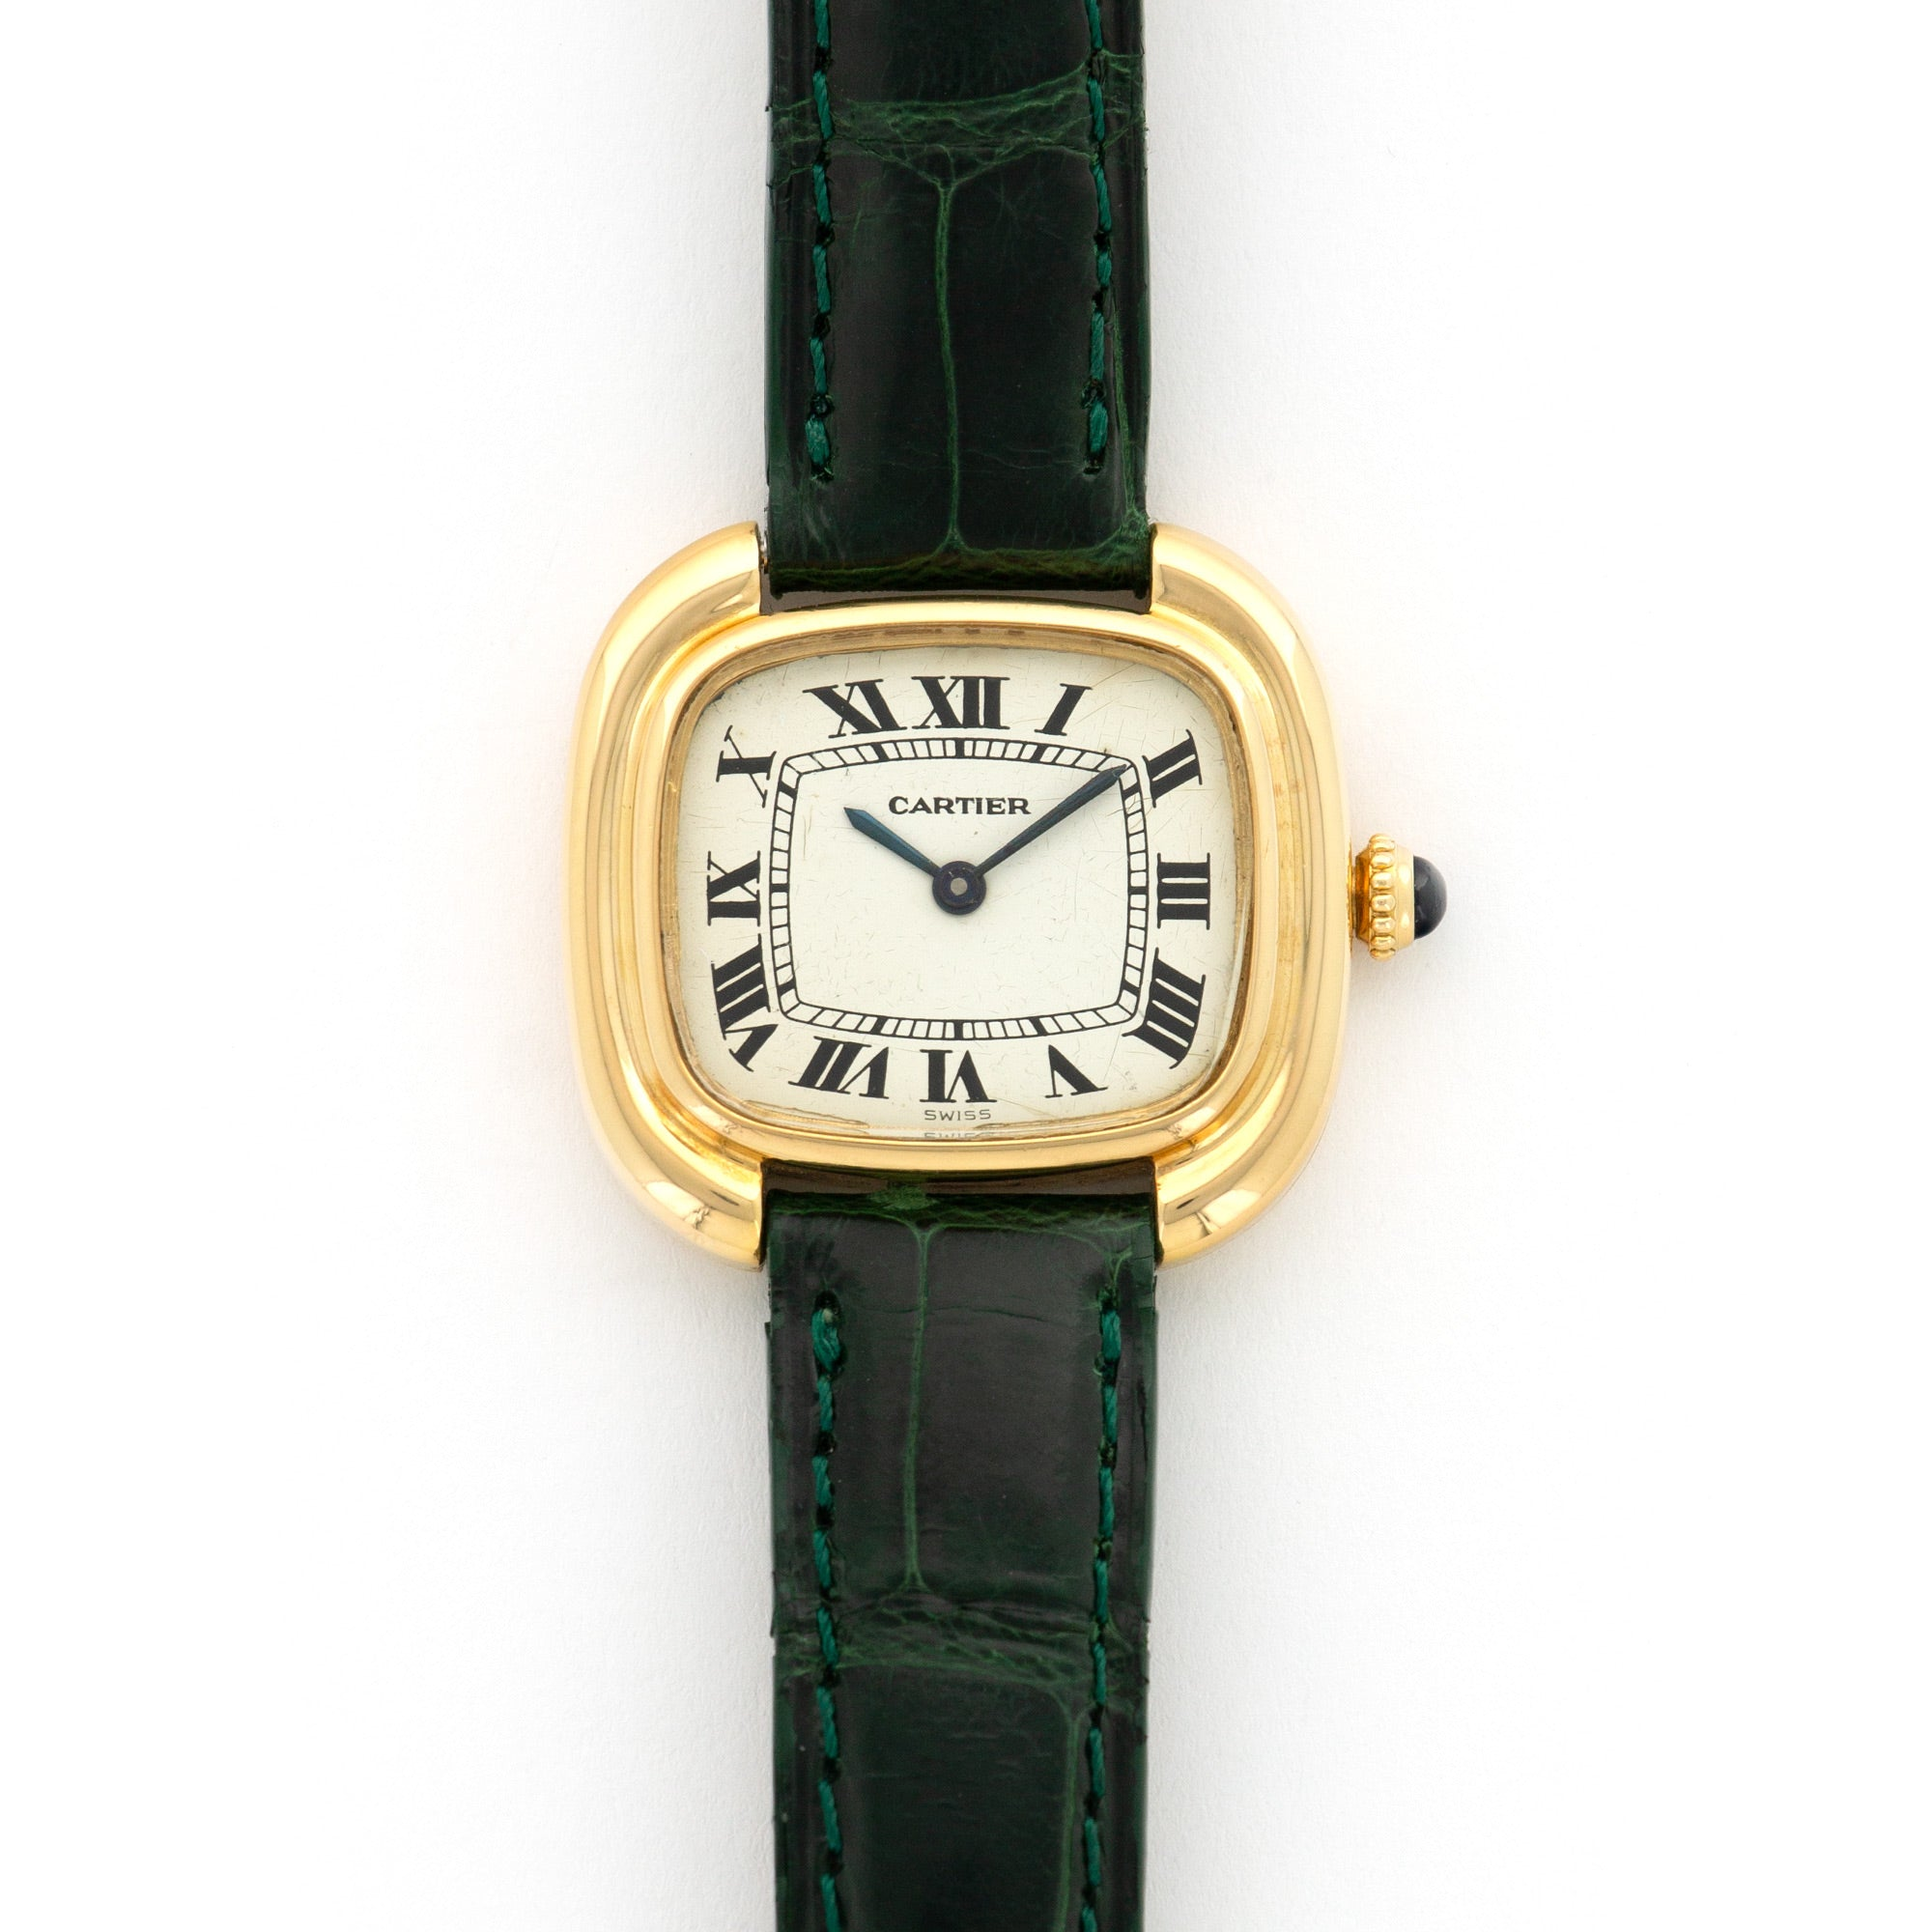 Cartier Ellipse N/A 18k YG  Very Good Ladies 18k YG White with Roman Numerals 27mm Manual 1970s Green Crocodile Leather Travel Case